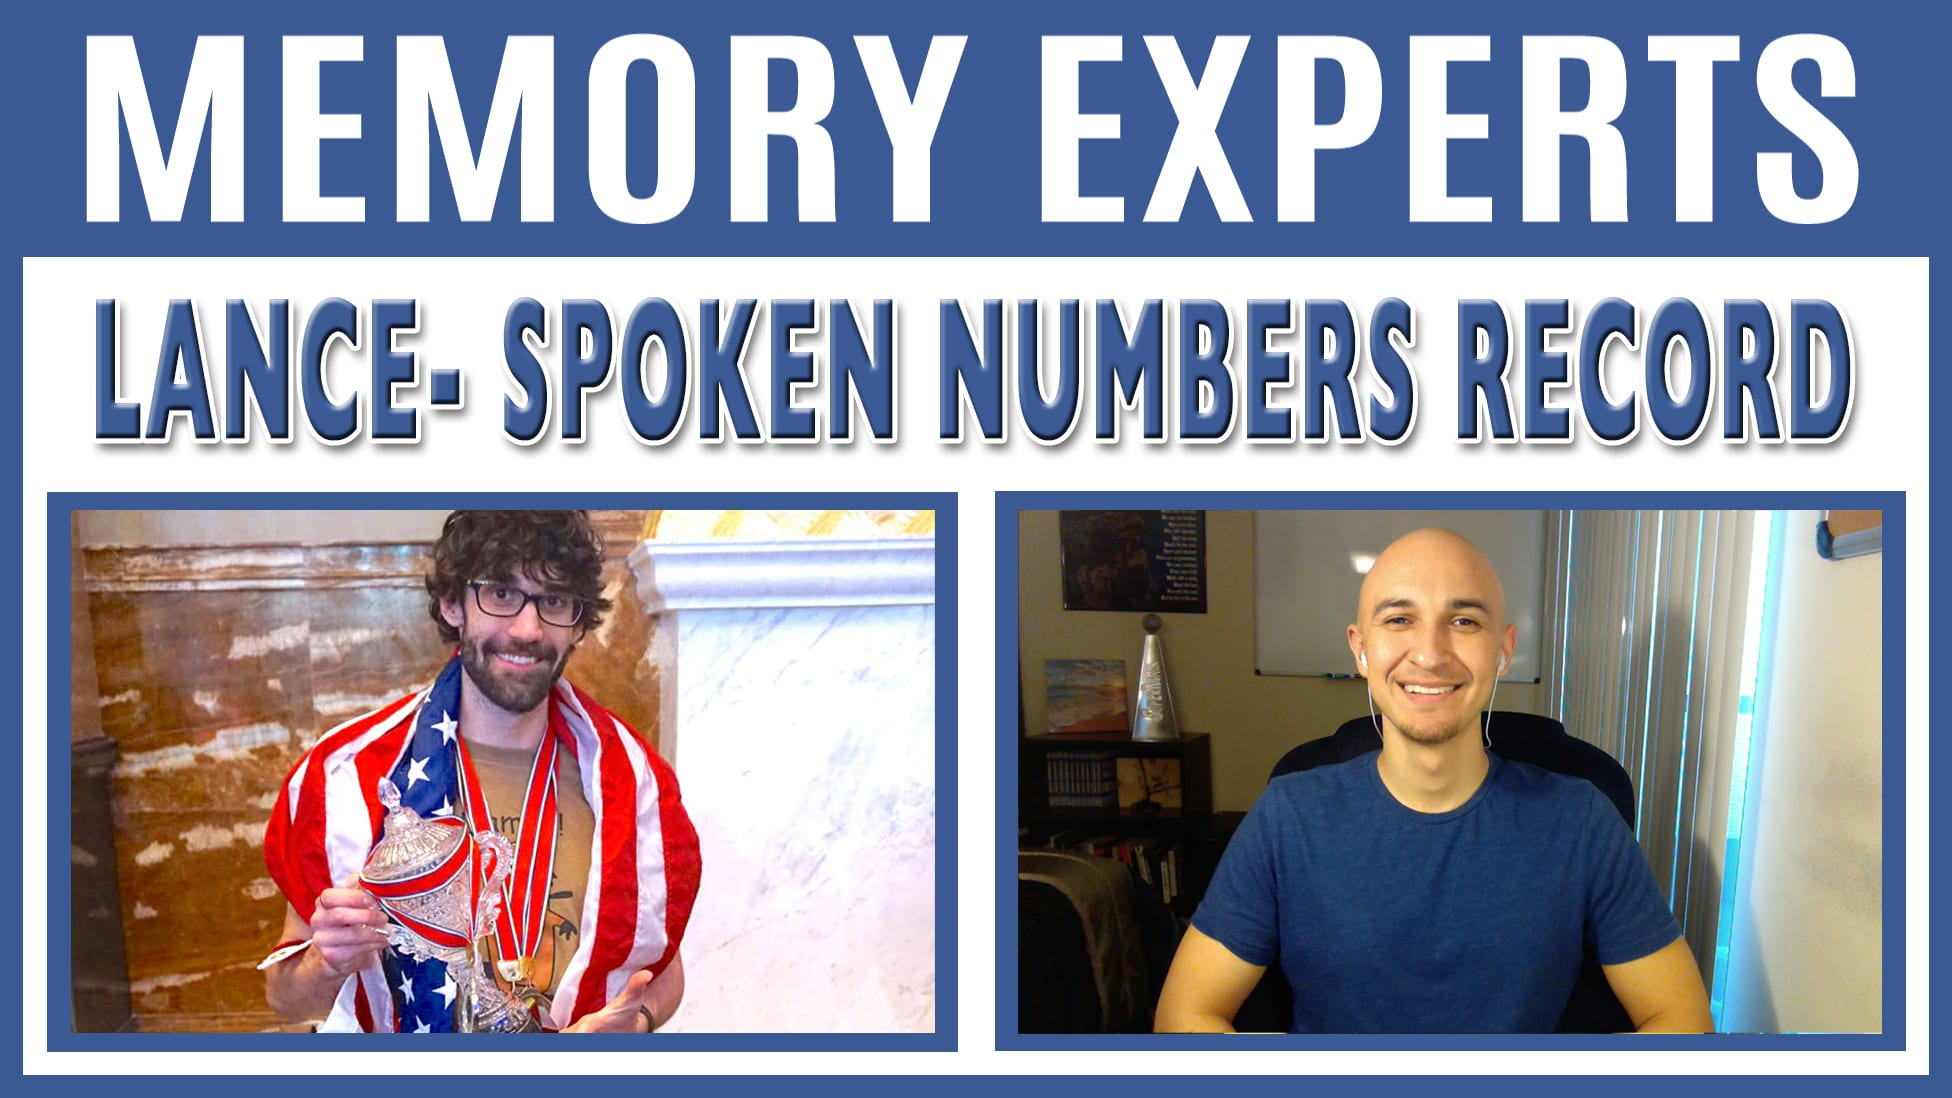 Lance - Spoken Numbers Record | Memory Experts with Luis Angel